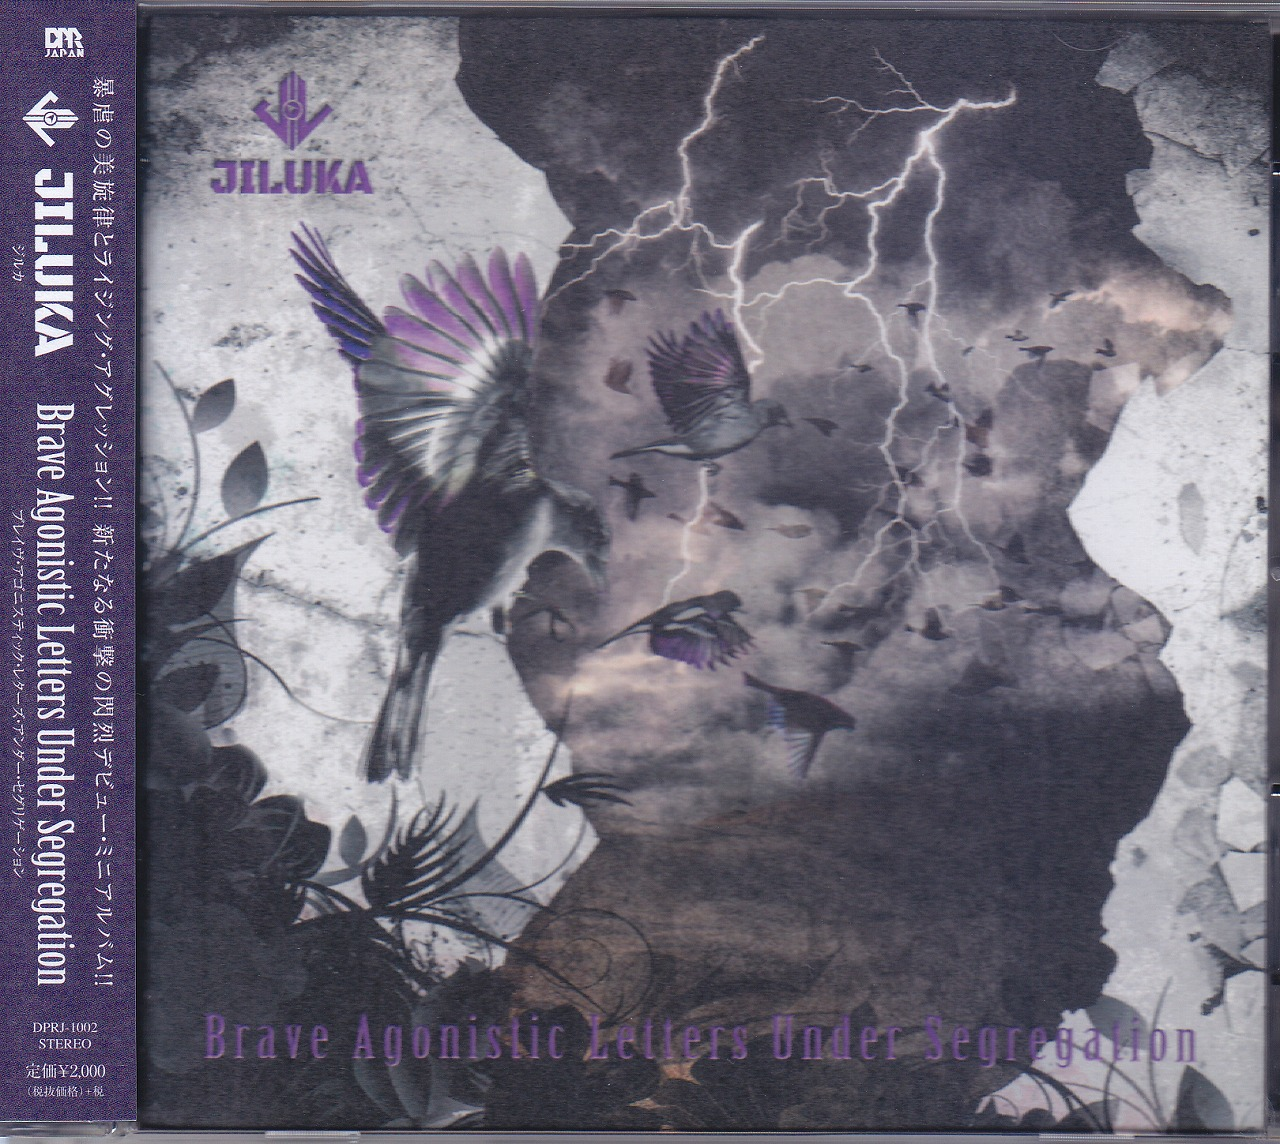 ジルカ の CD Brave Agonistic Letters Under Segregation